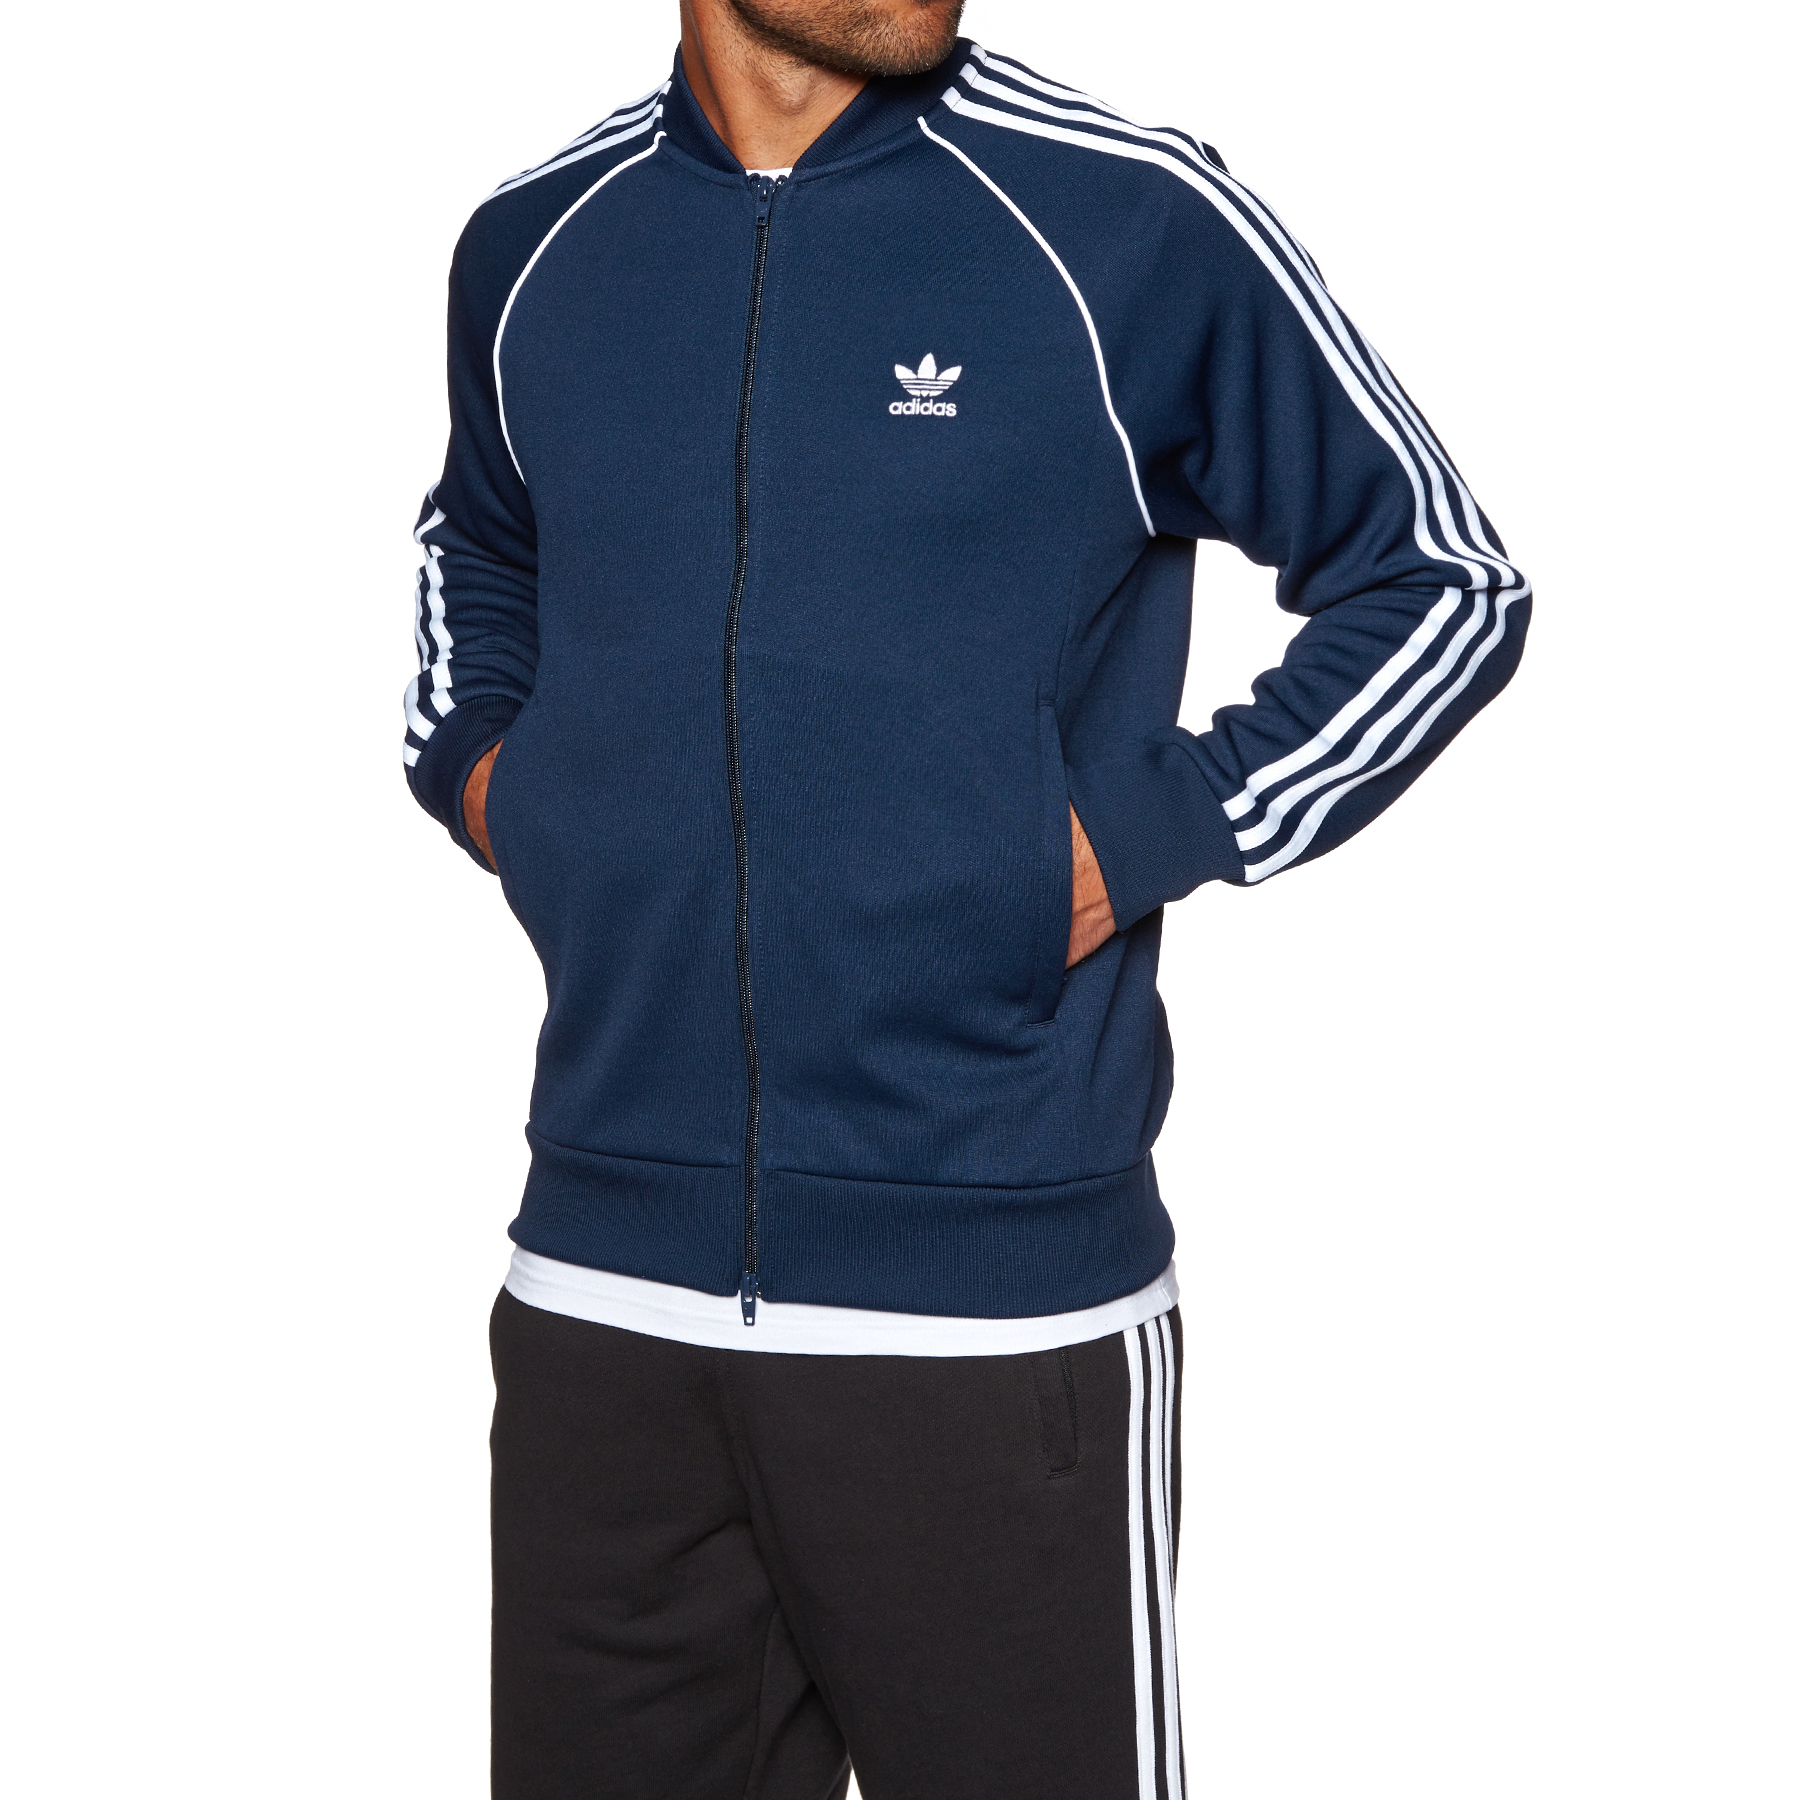 Adidas Originals SST Track Jacket | Free Delivery* on All Orders